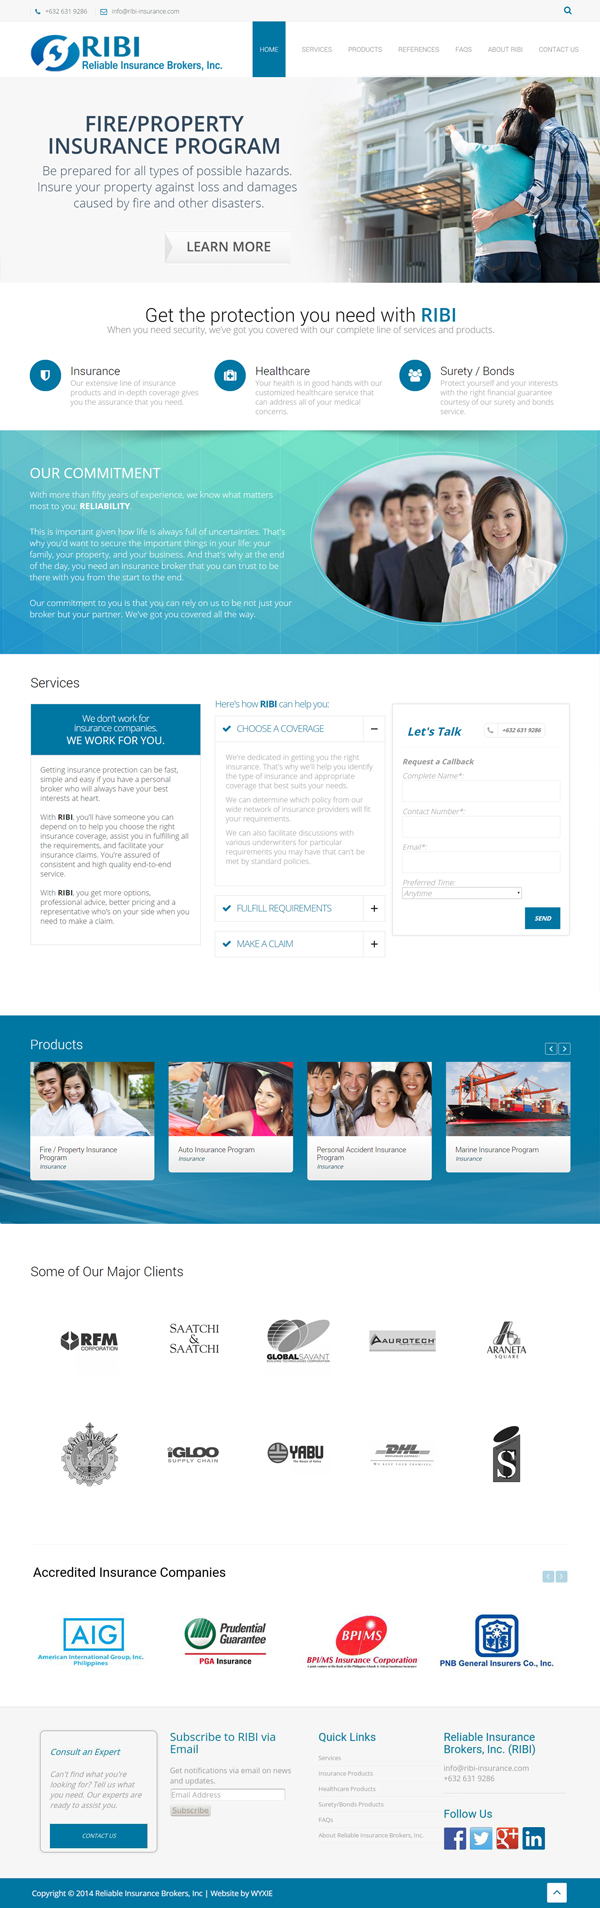 Reliable Insurance Brokers Inc Home Page